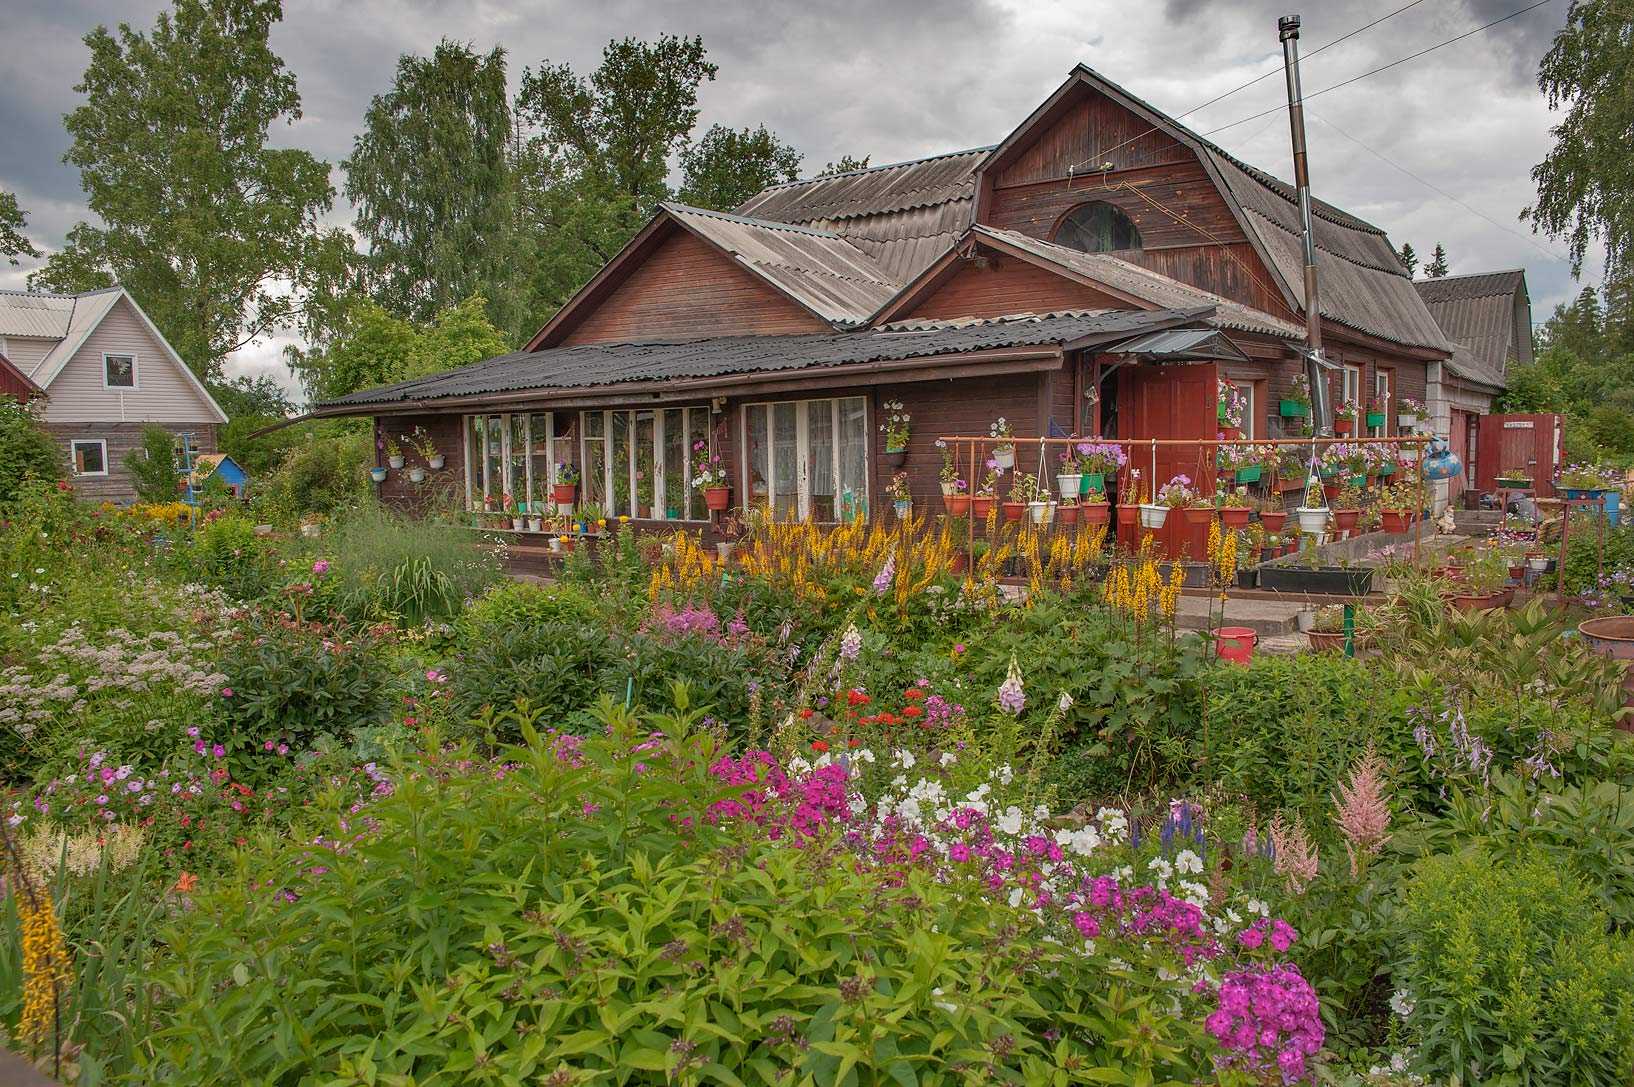 photo 1628-23: summer house with flowers on krasnaya st